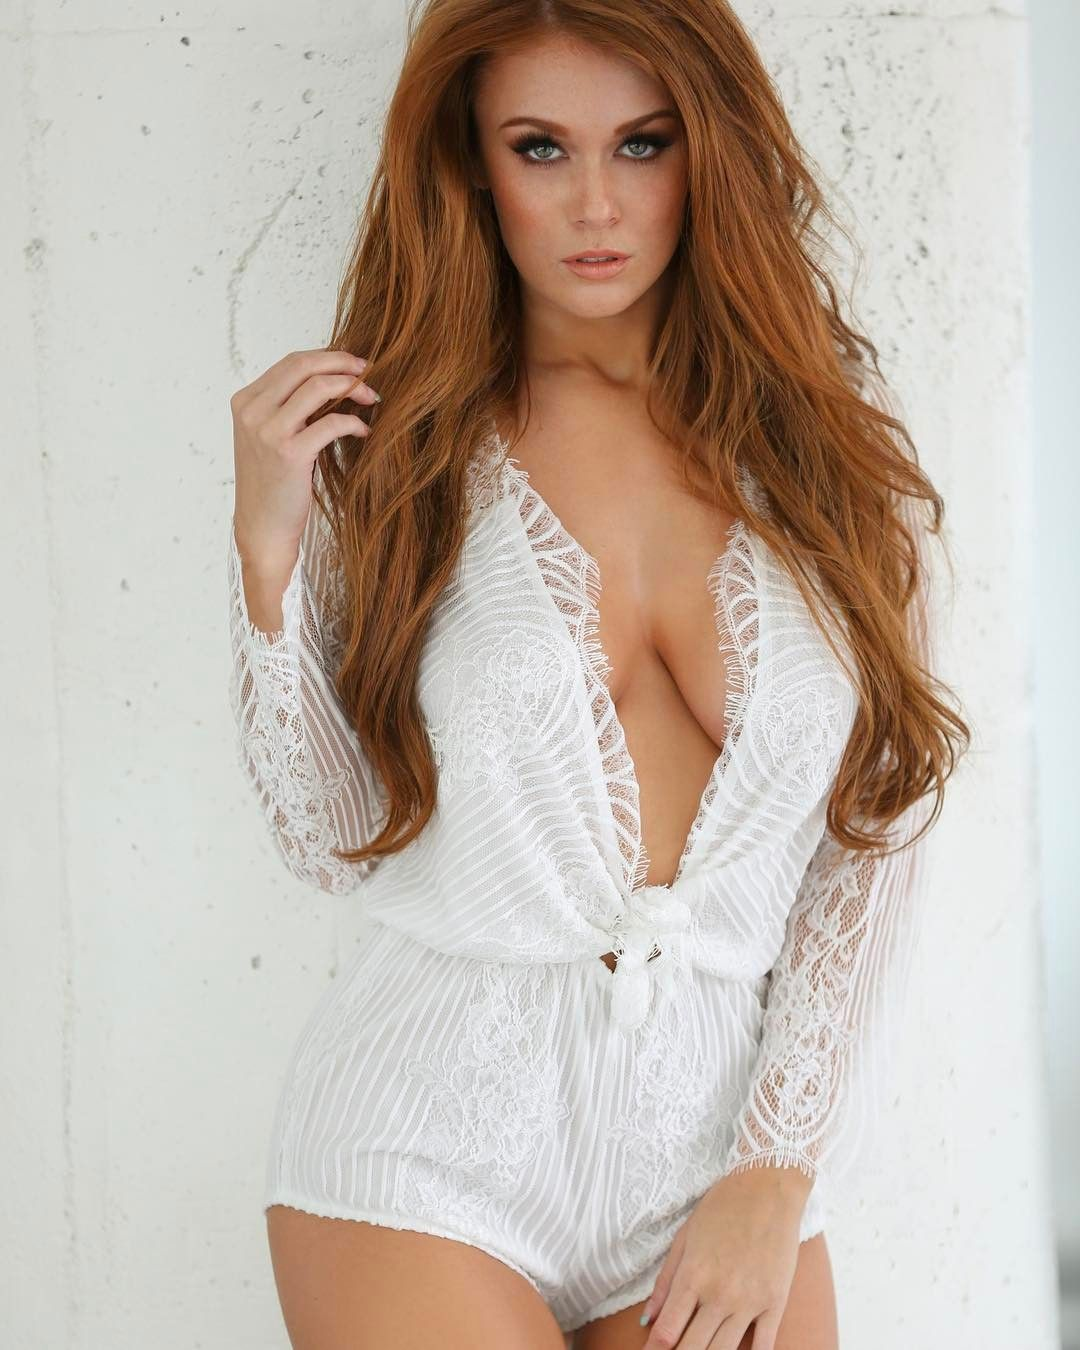 Paparazzi Leanna Decker nudes (83 foto and video), Tits, Leaked, Feet, lingerie 2006